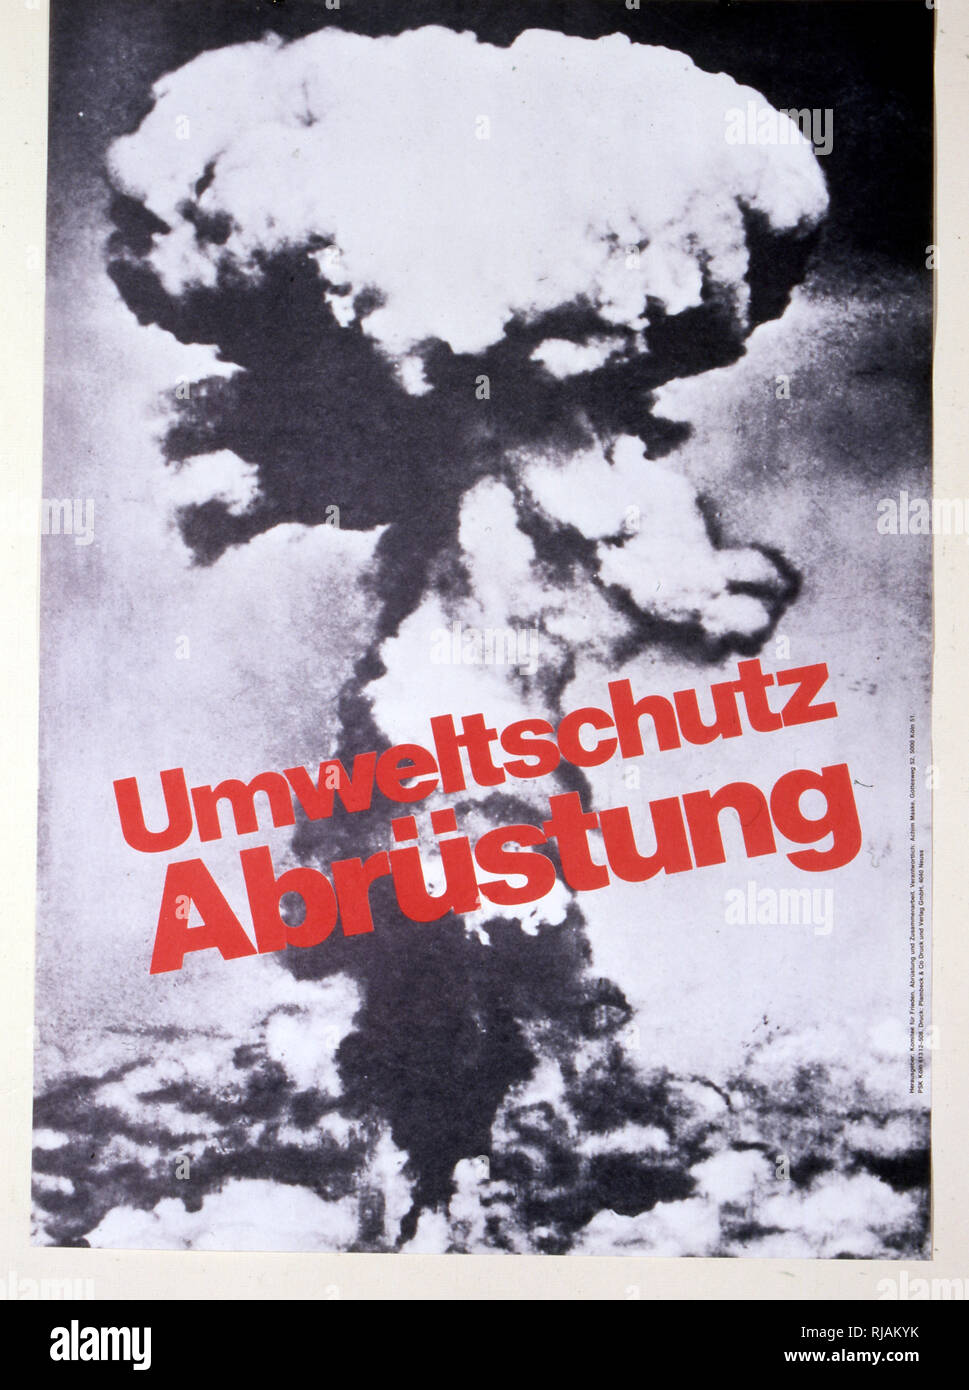 umweltschutz abrustung' 1983, anti-nuclear war, poster published by the German committee for freedom - Stock Image